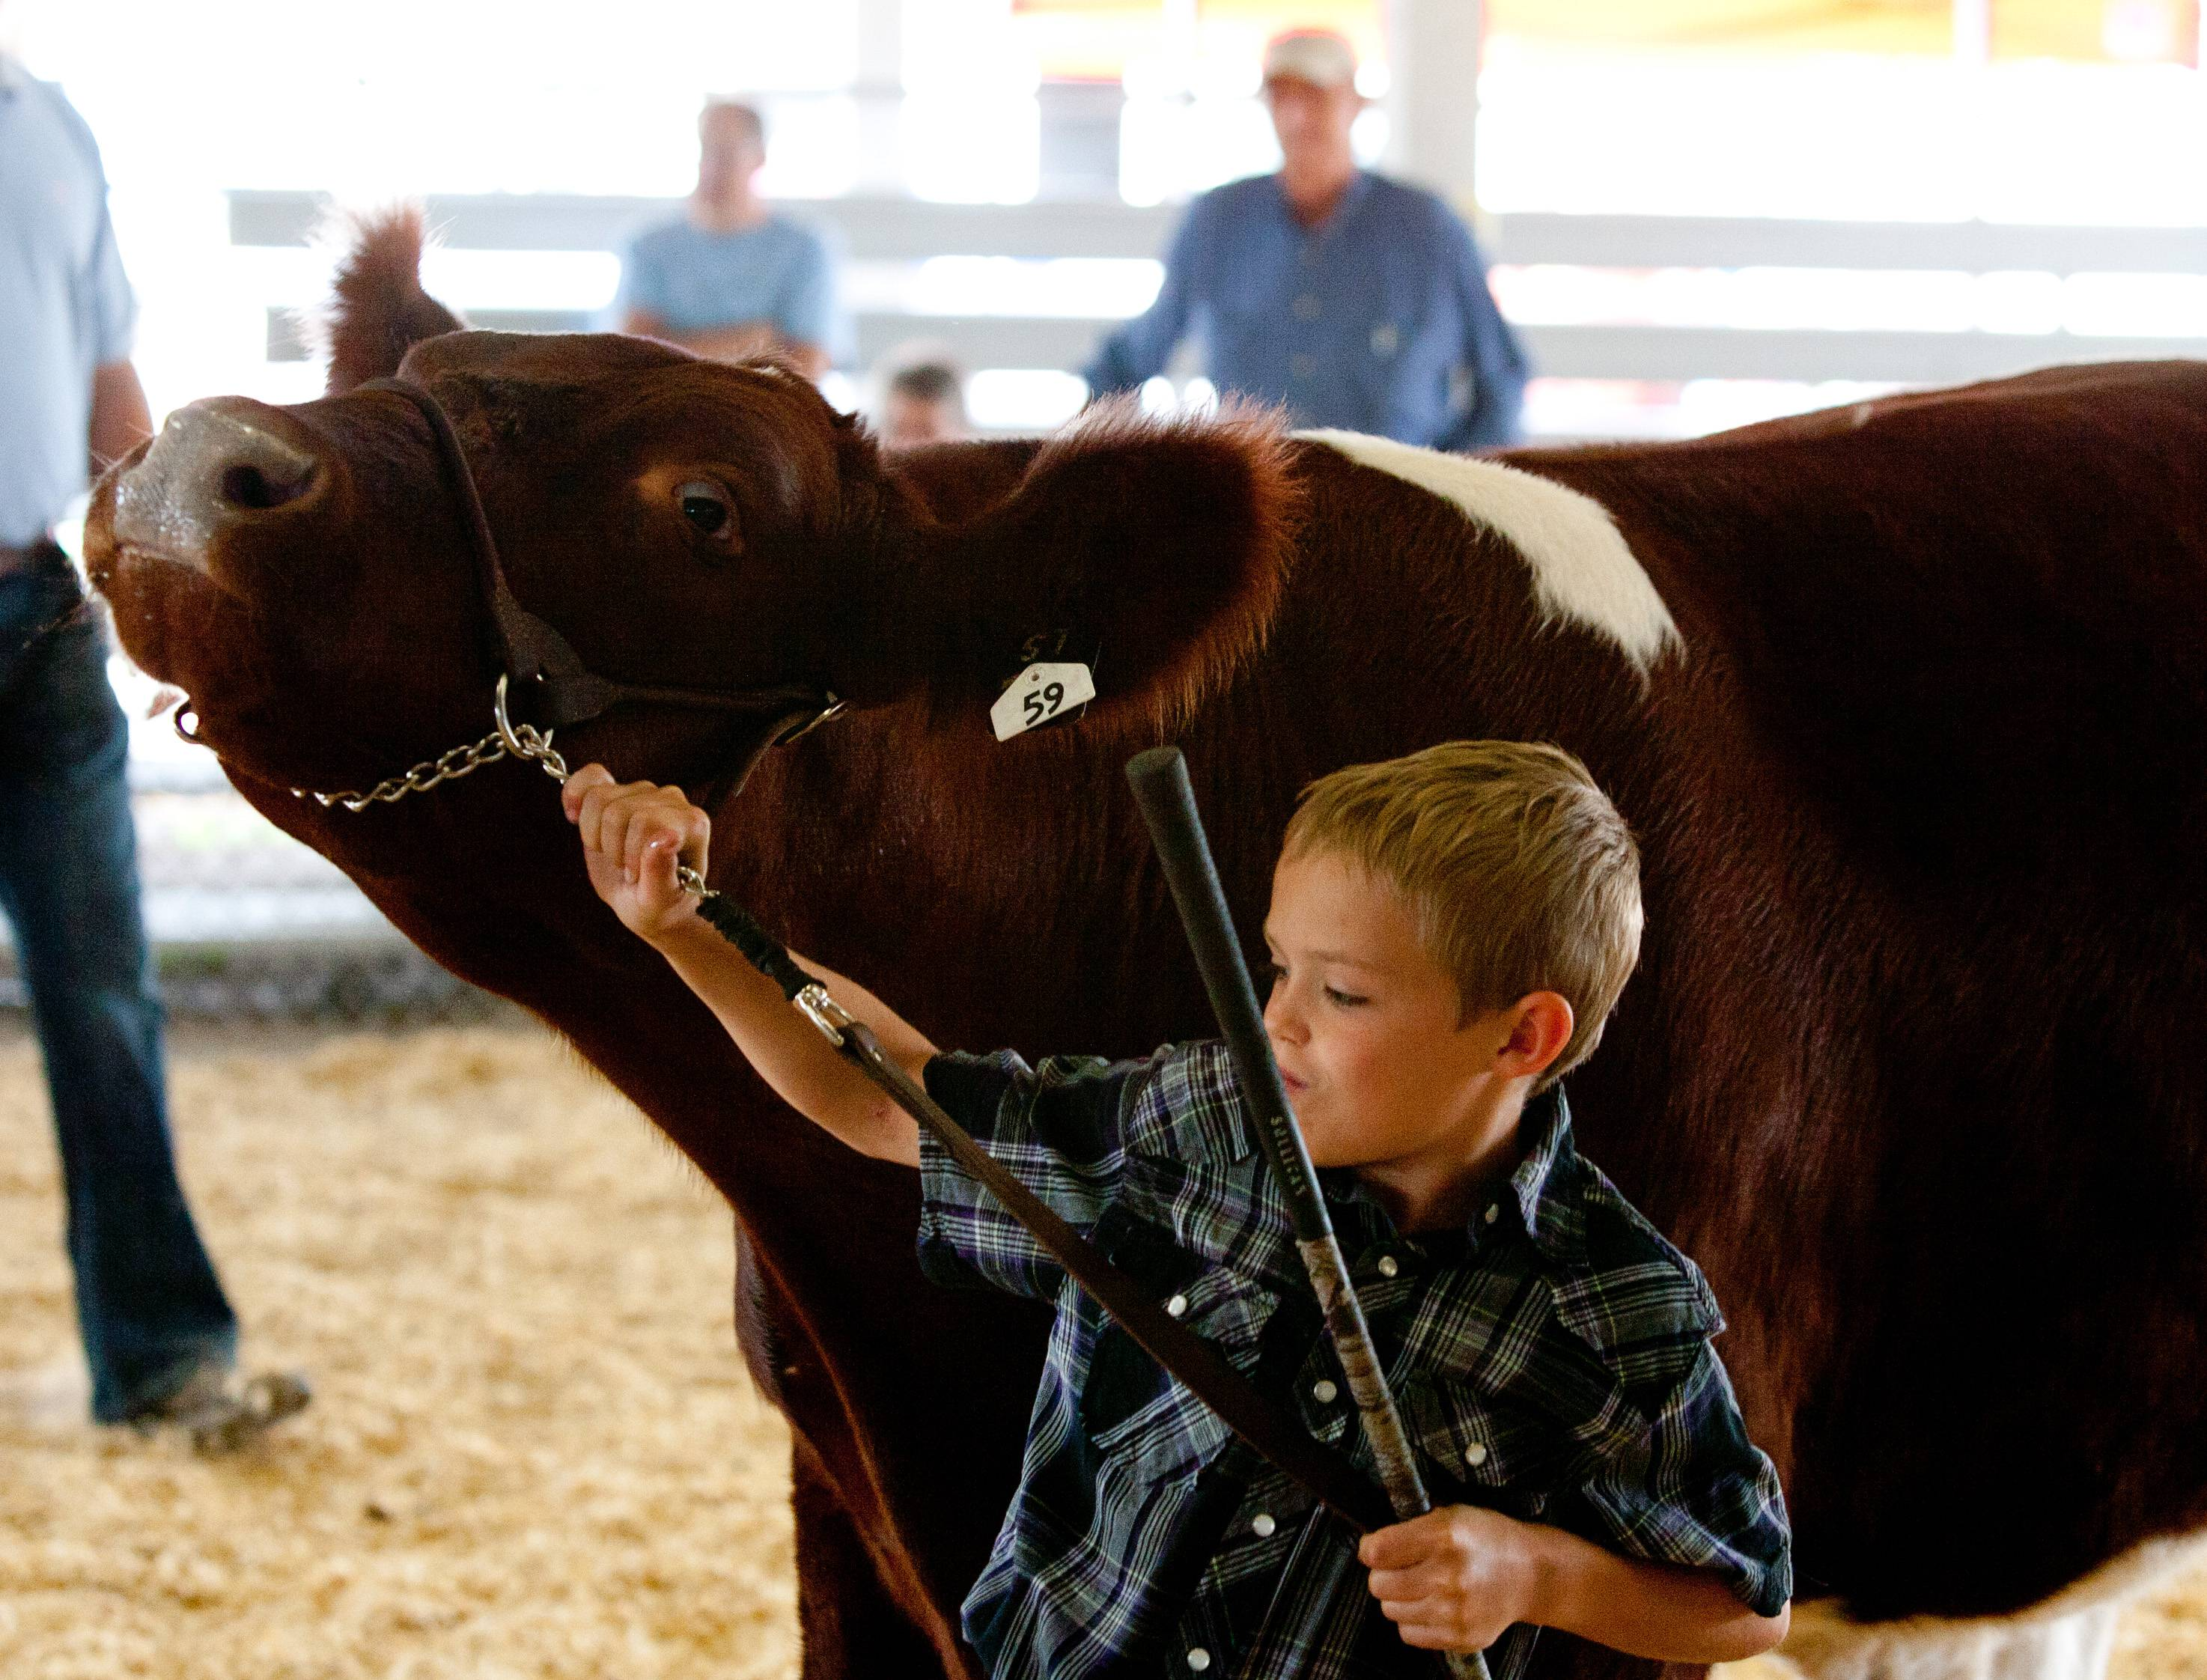 Brody Engel of Genoa keeps control of his heavyweight shorthorn steer during beef cattle judging at the DuPage County Fair.